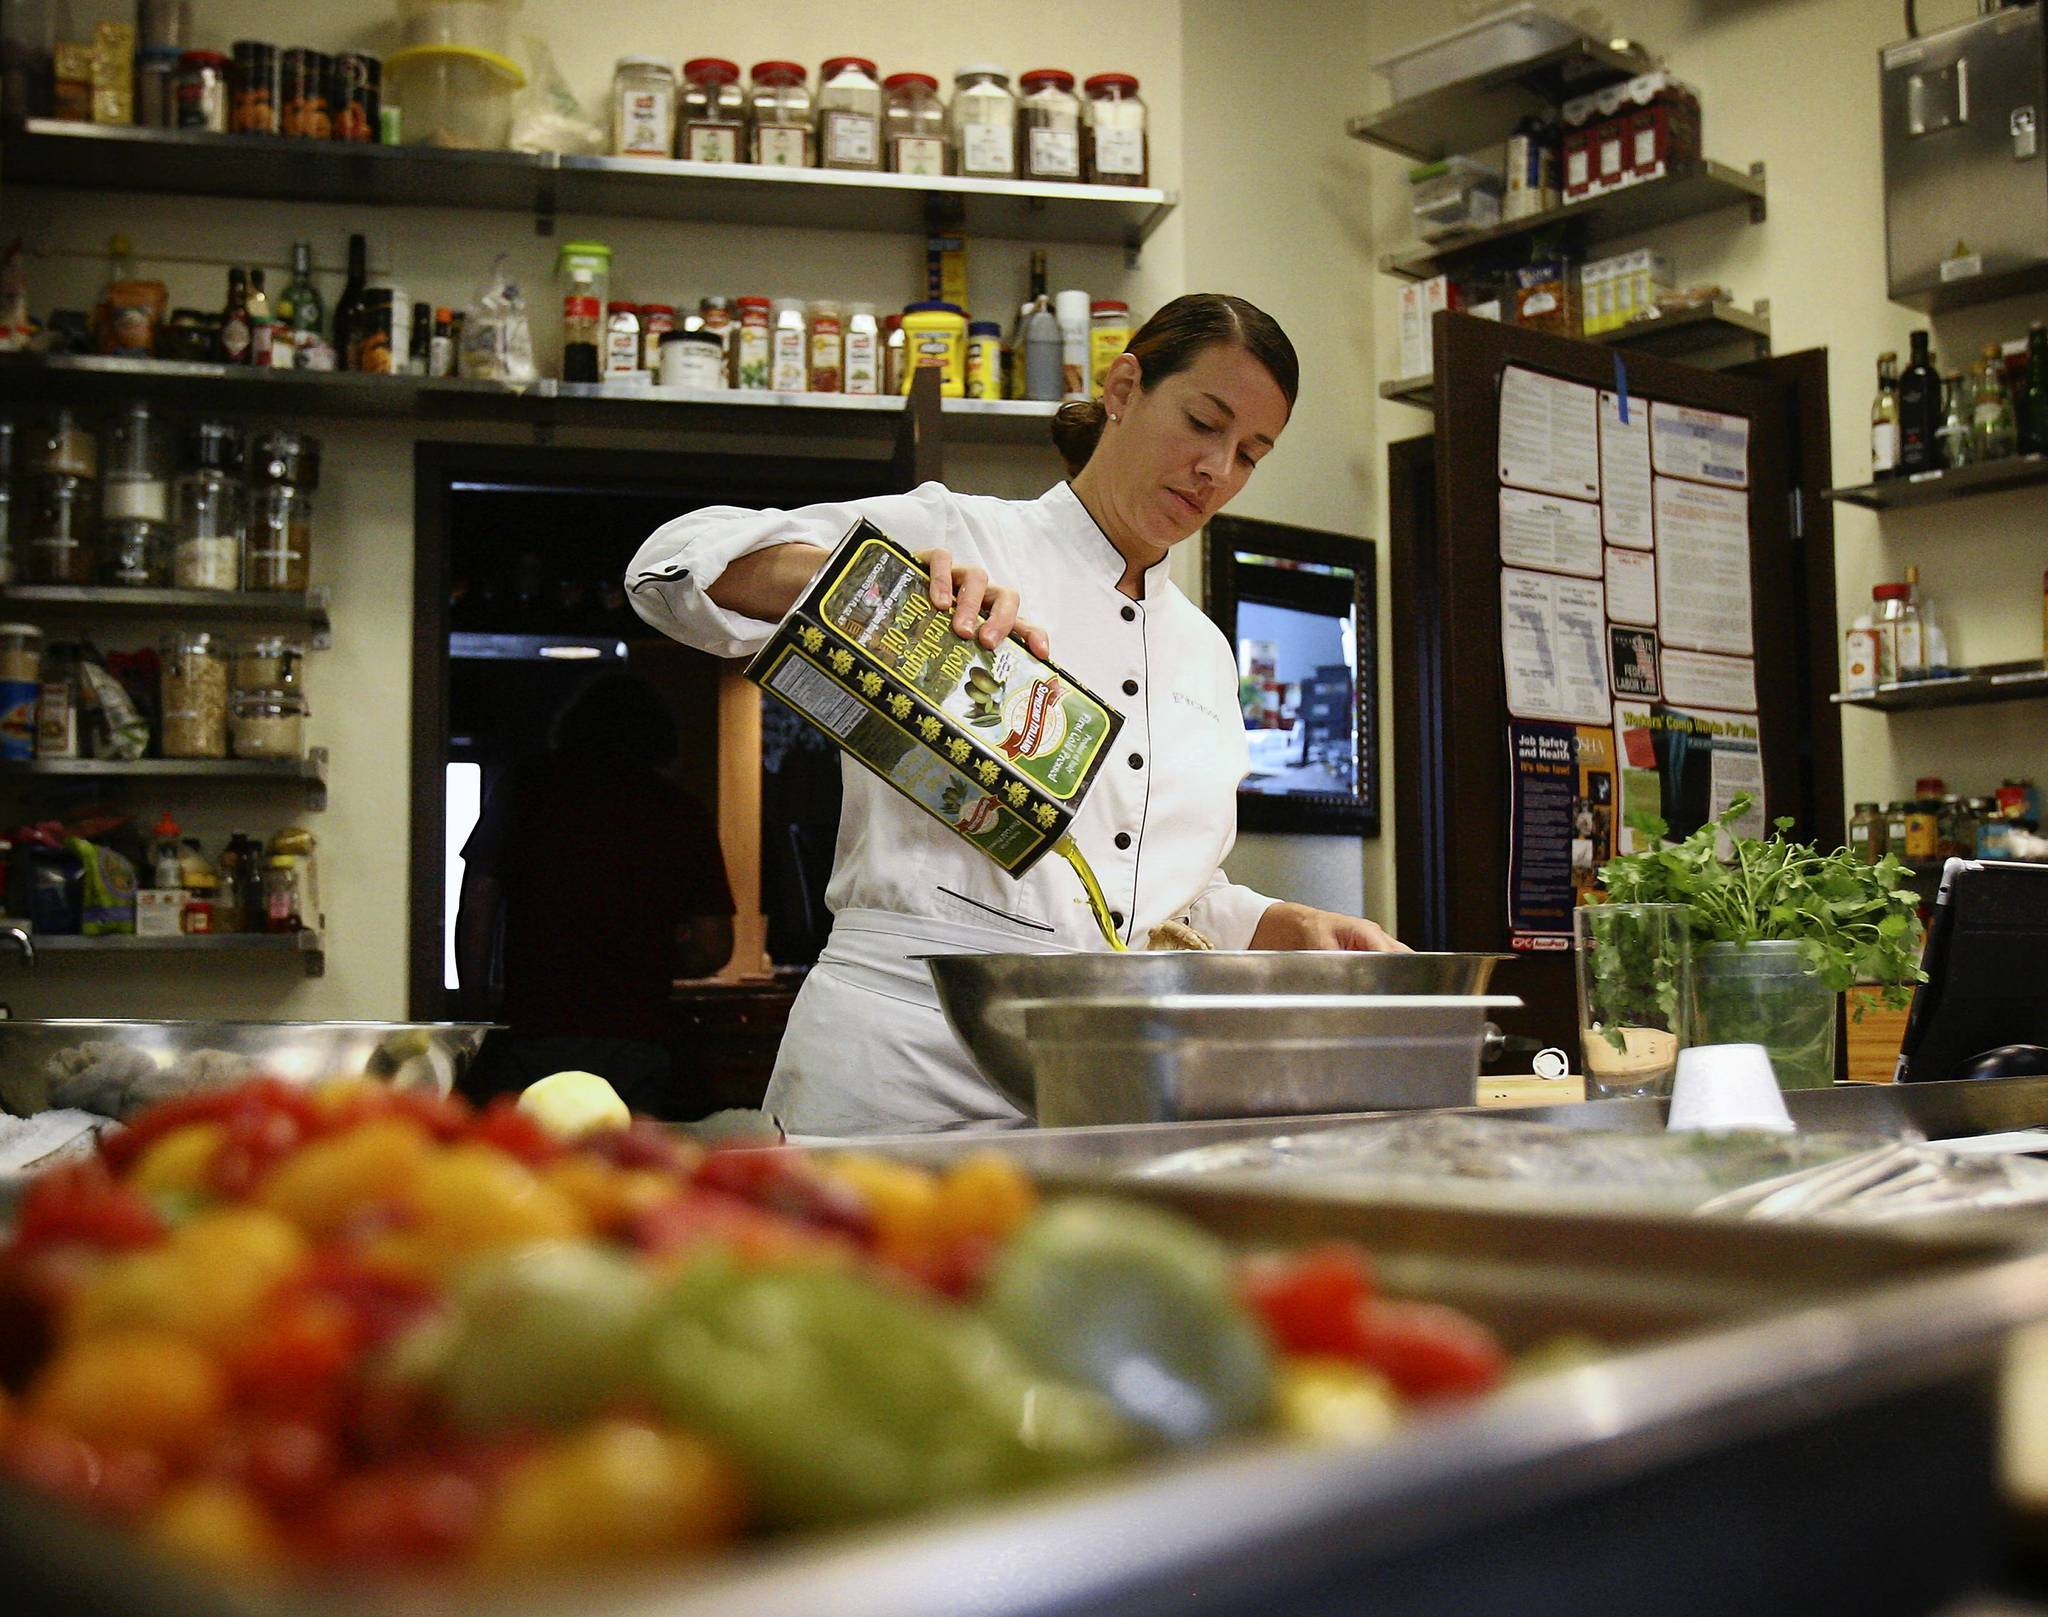 Loren Falsone, chef and owner of The Table in Orlando prepares a meal for a private party at the restaurant on Thursday,